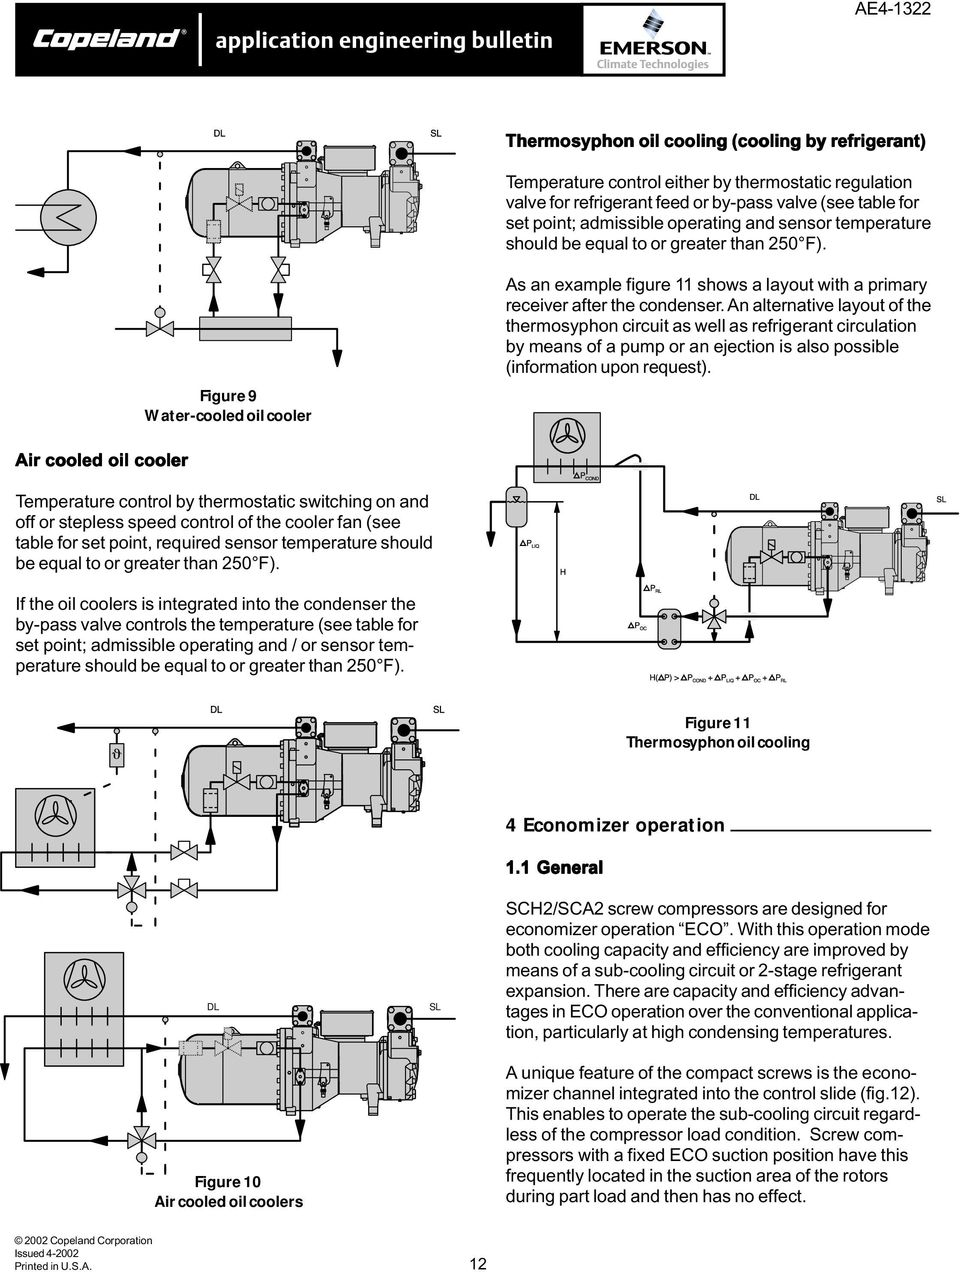 copeland semi hermetic compressor manual